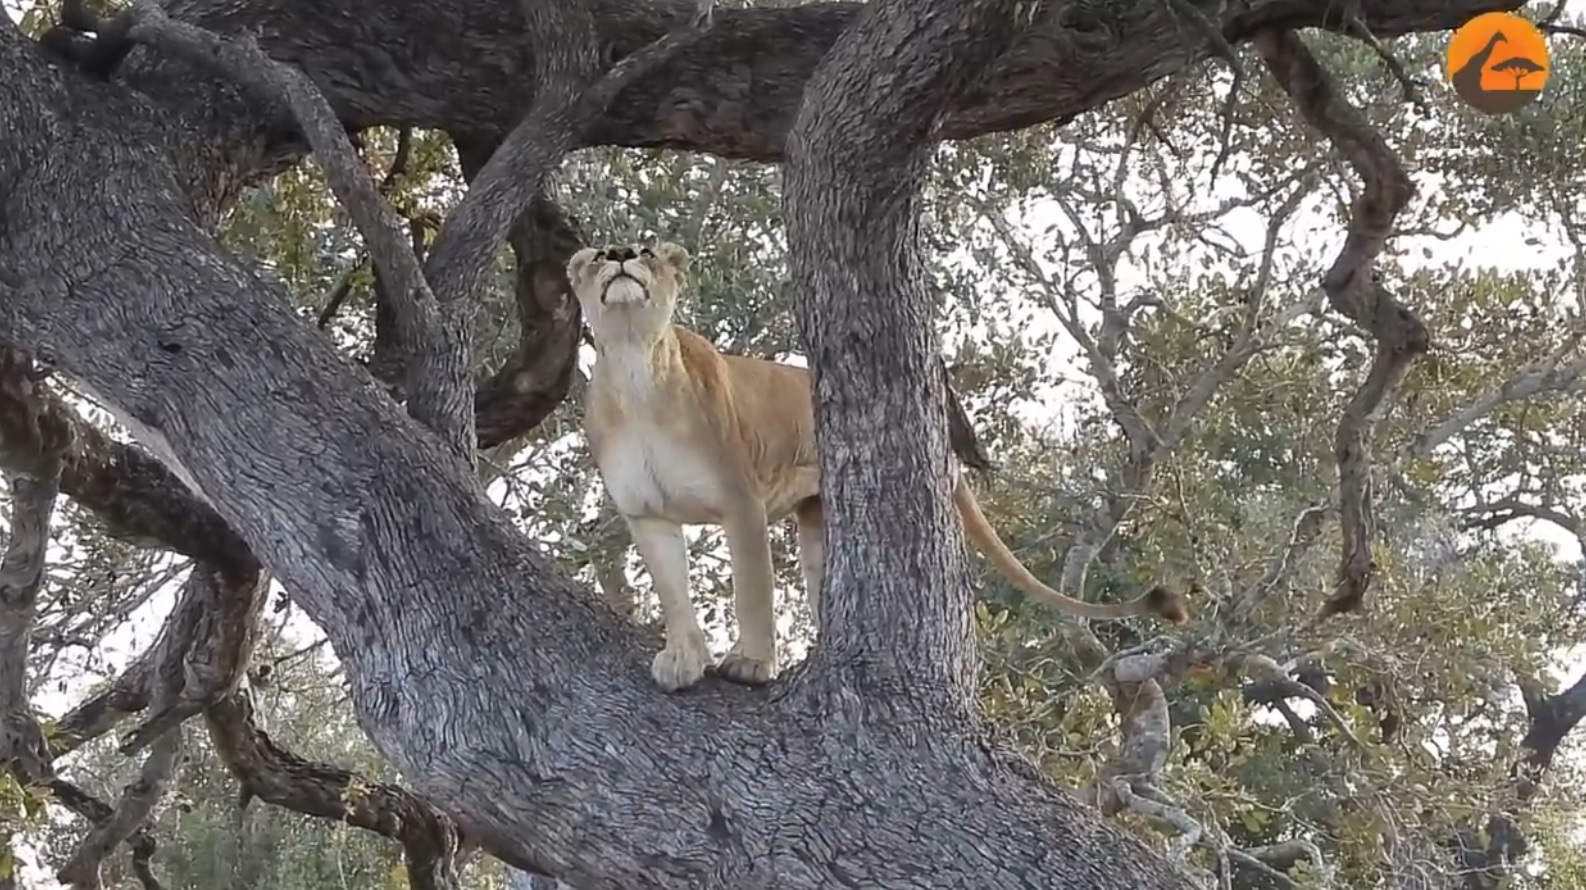 Lions Try To Climb Tree To Get To Leopard